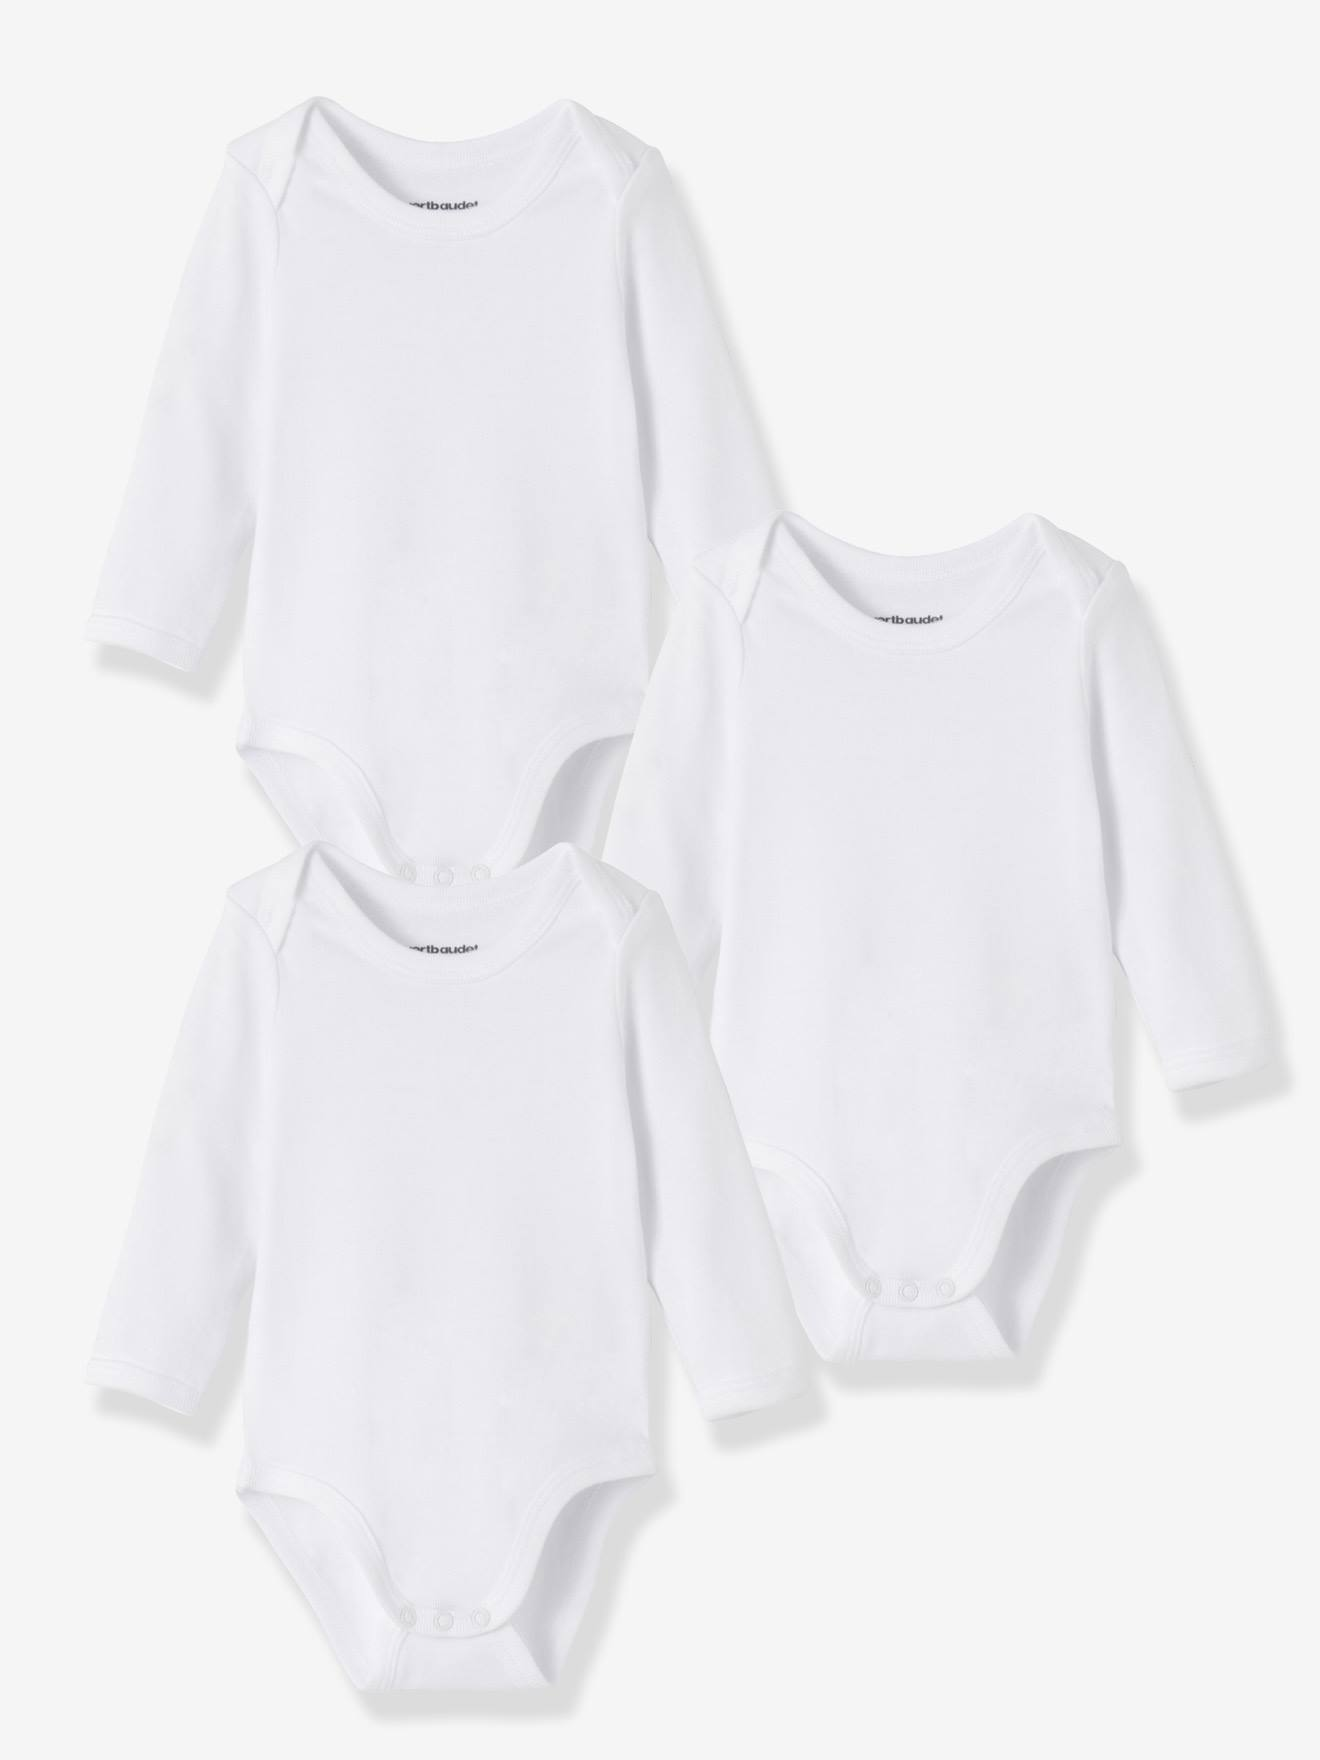 Baby Pack of 3 Long Sleeve Bodysuit Vests Tops Tiny Sizes from Prem Baby to 12 Months